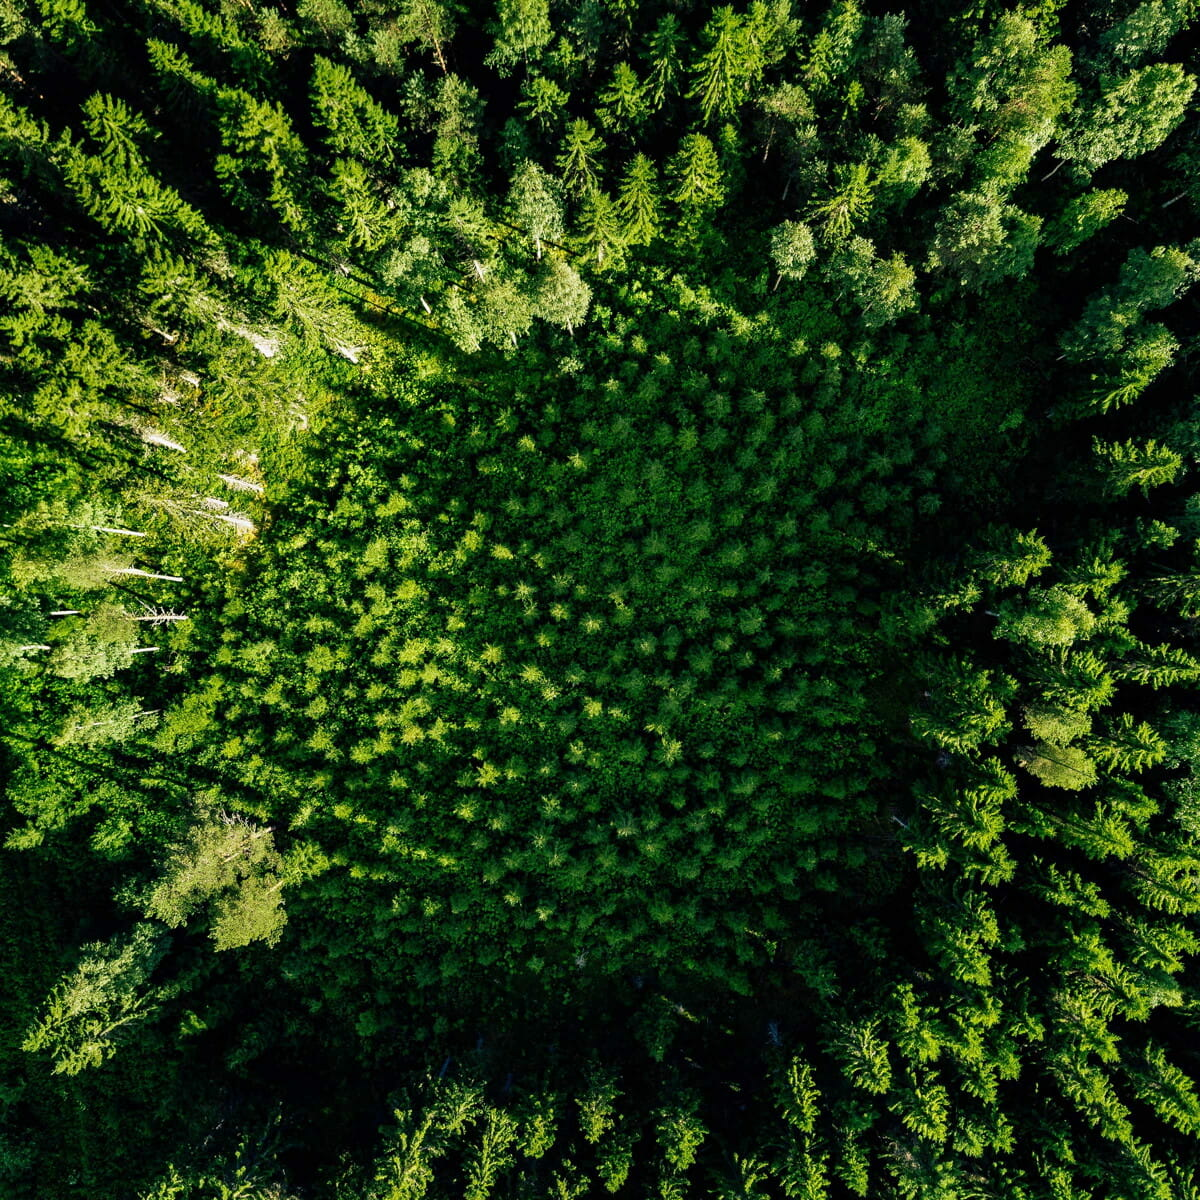 aerial-top-view-of-green-trees-in-the-forest-L4GVCQK@1x.jpg